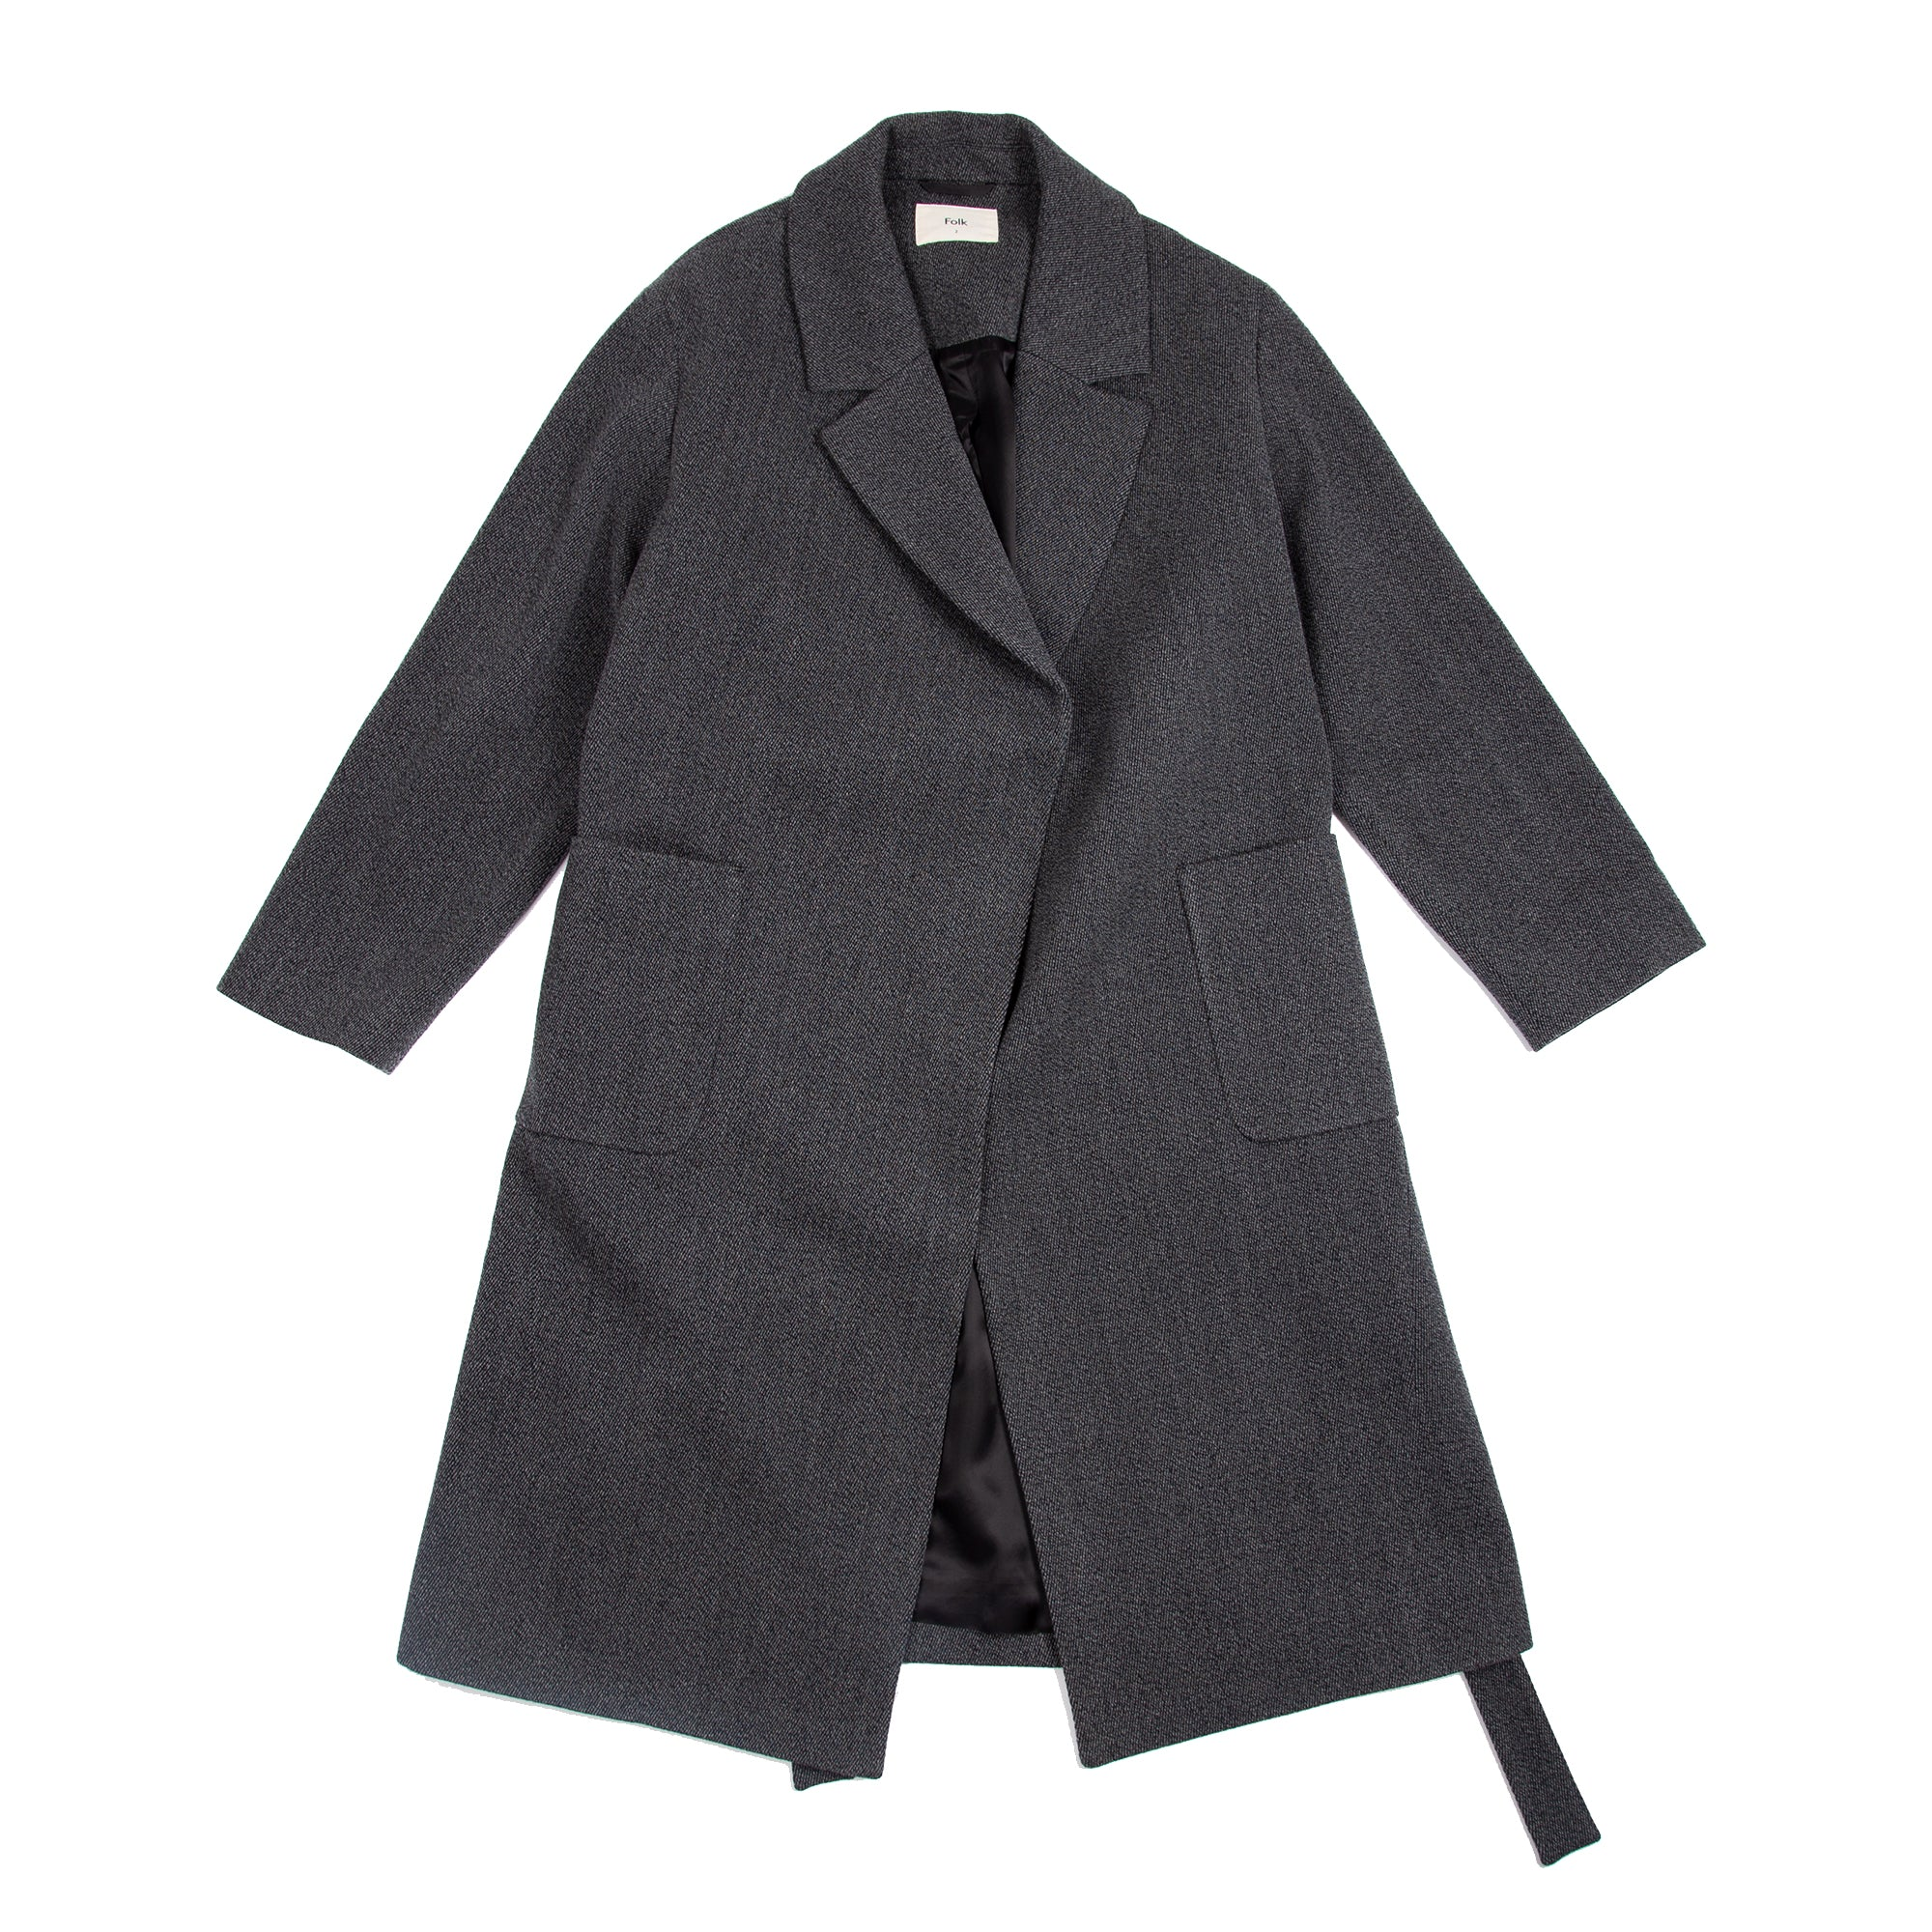 Robe Coat - Charcoal Melange Texture